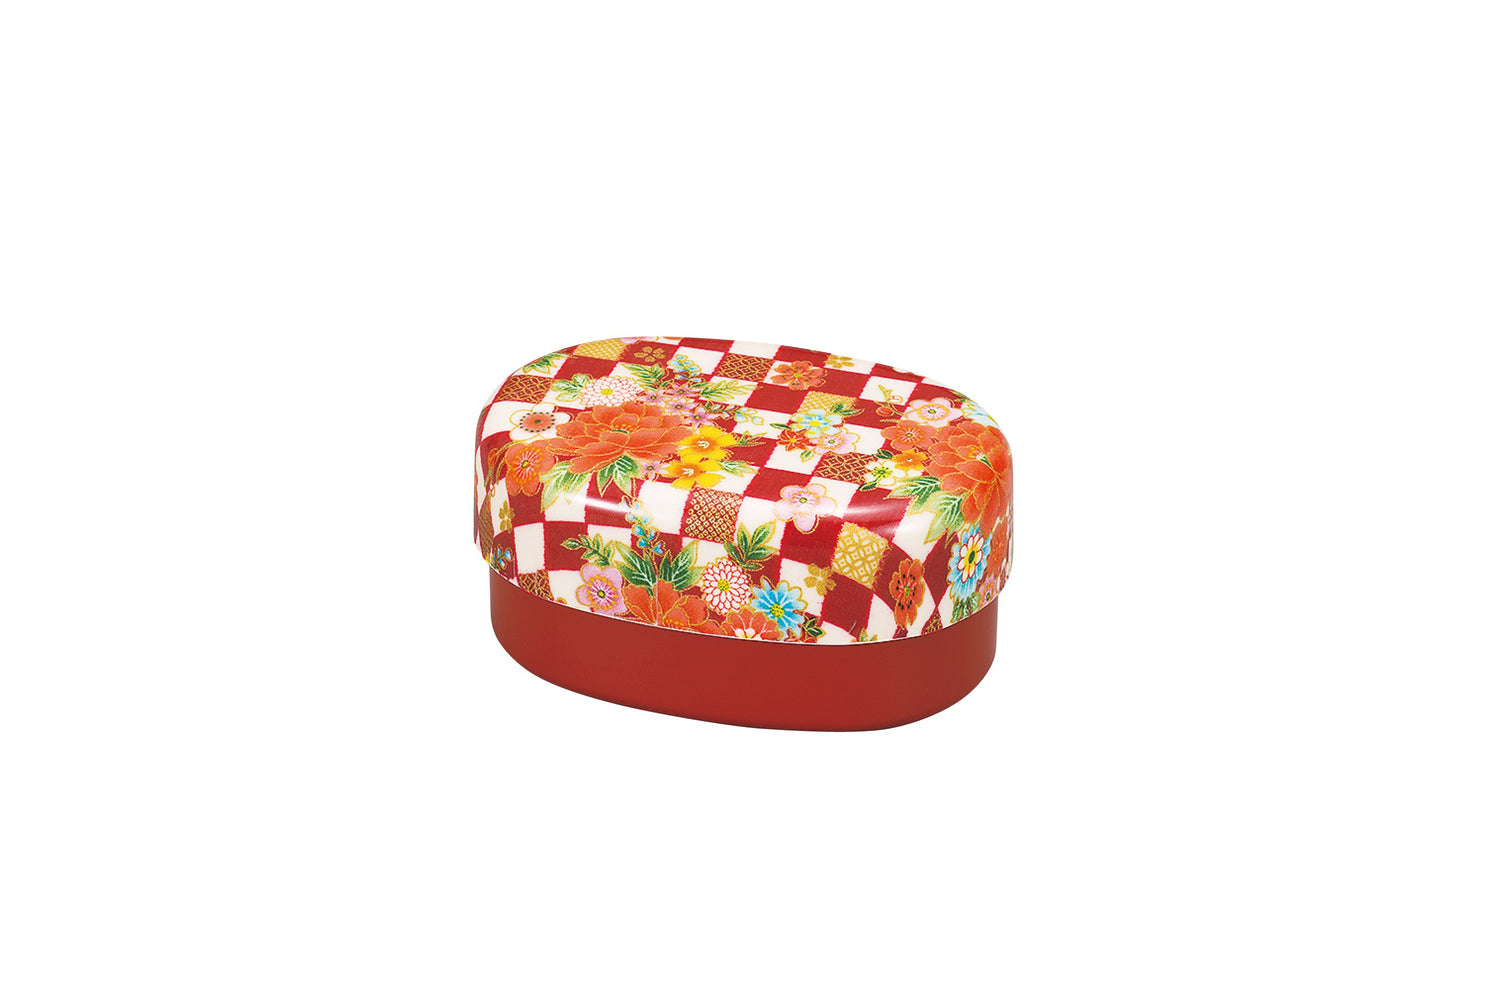 Ichimatsu Flower Bento Box small Red by Hakoya - Bento&co Japanese Bento Lunch Boxes and Kitchenware Specialists